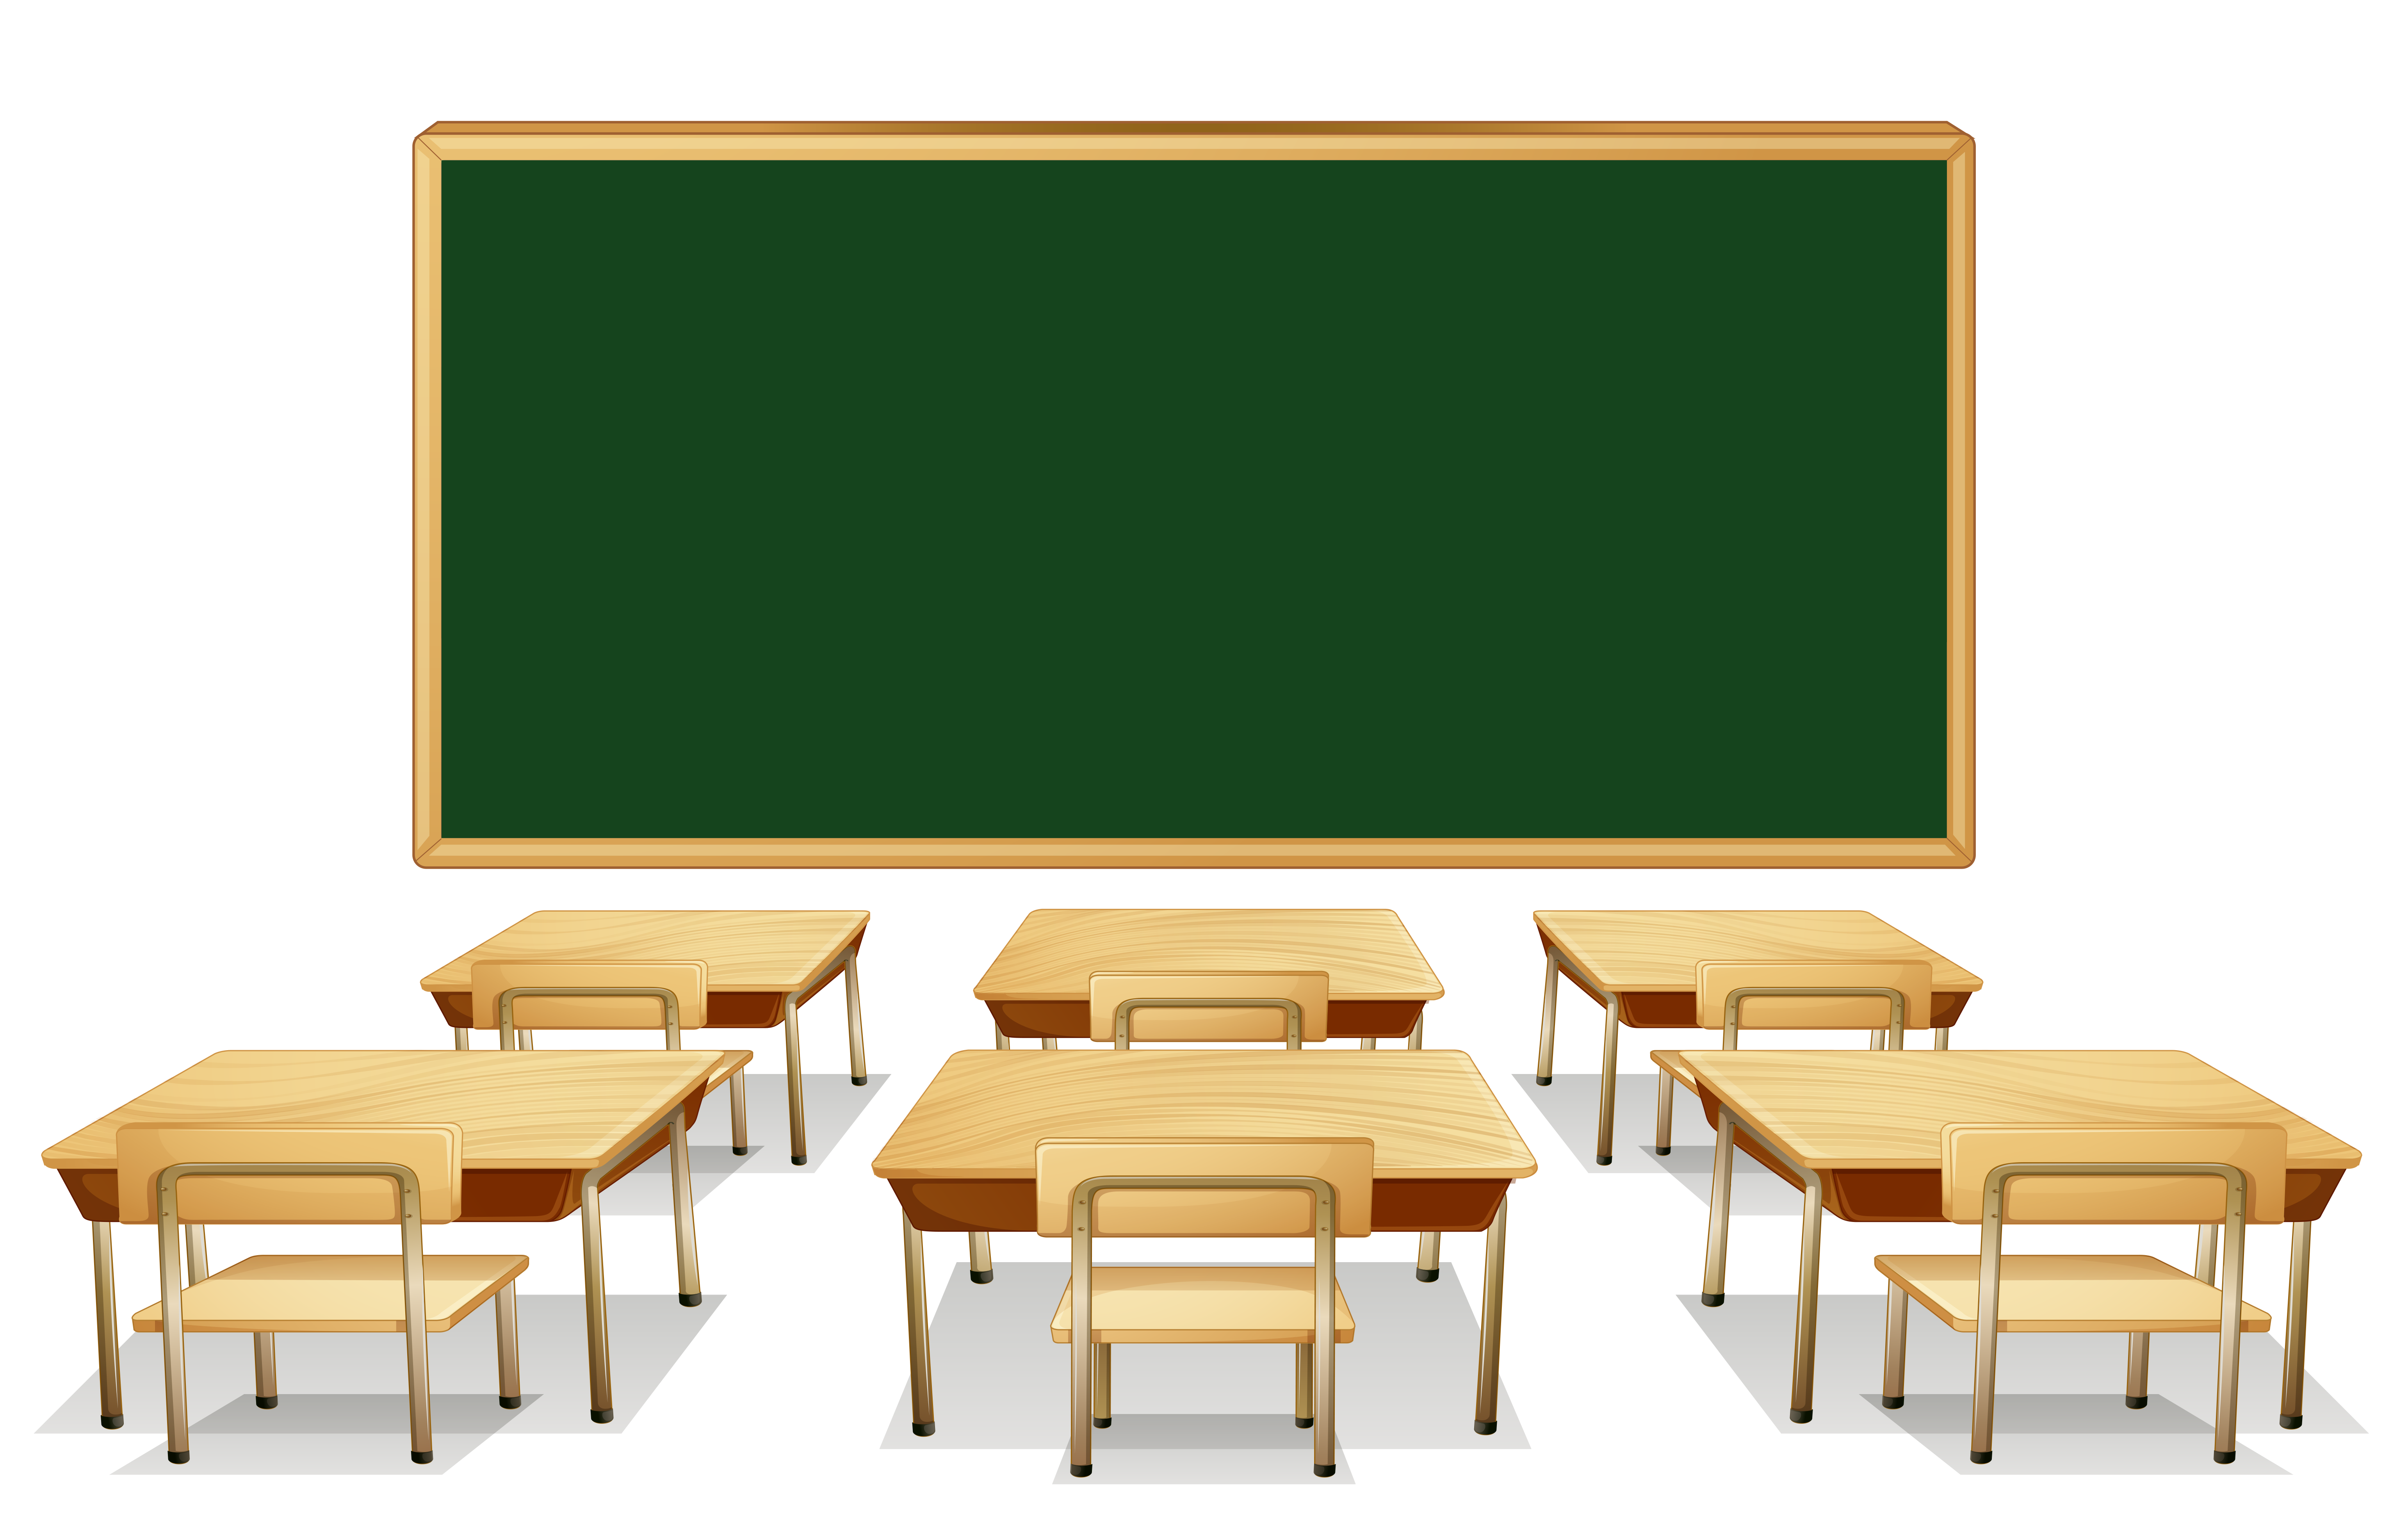 School board clipart clipart library stock Classroom with Green Board and Desks PNG Clipart Image | Gallery ... clipart library stock